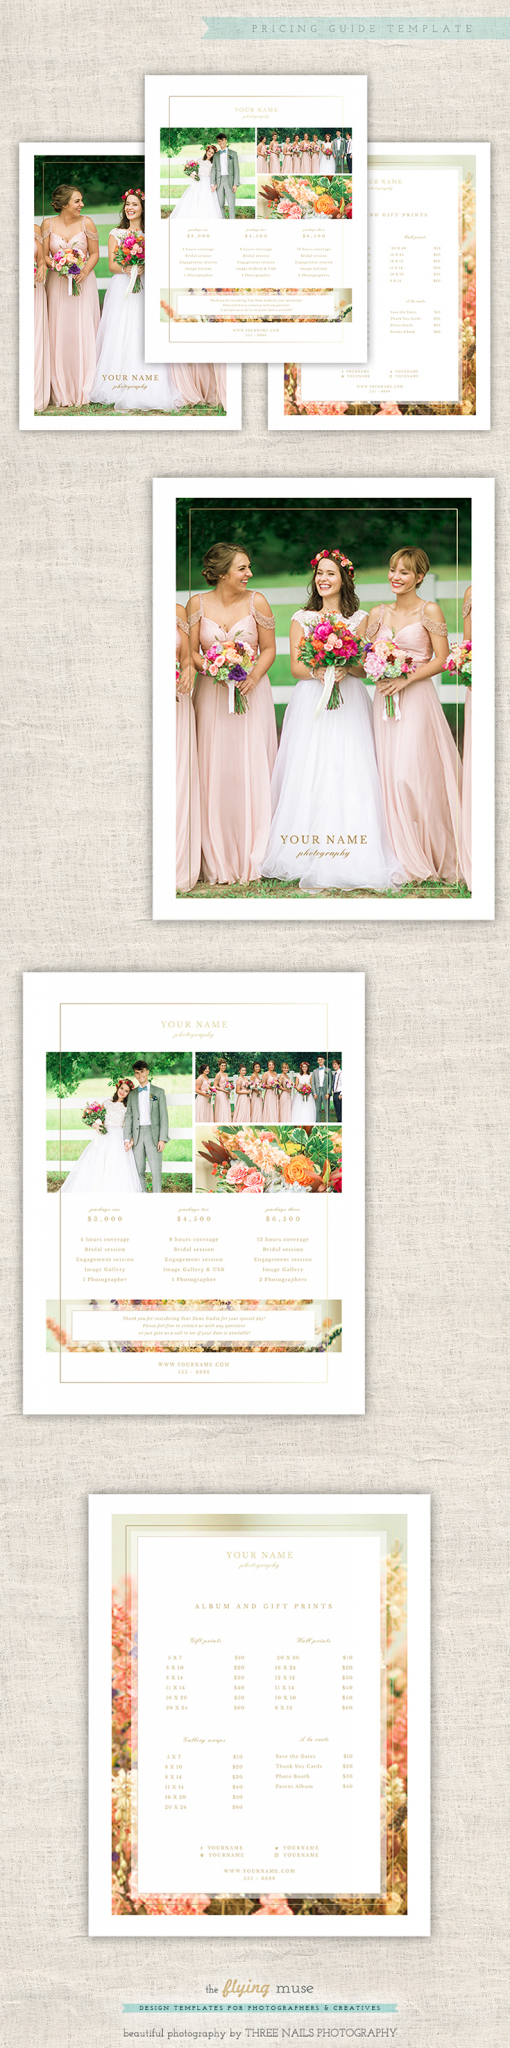 Wedding Pricing Guide Template Design